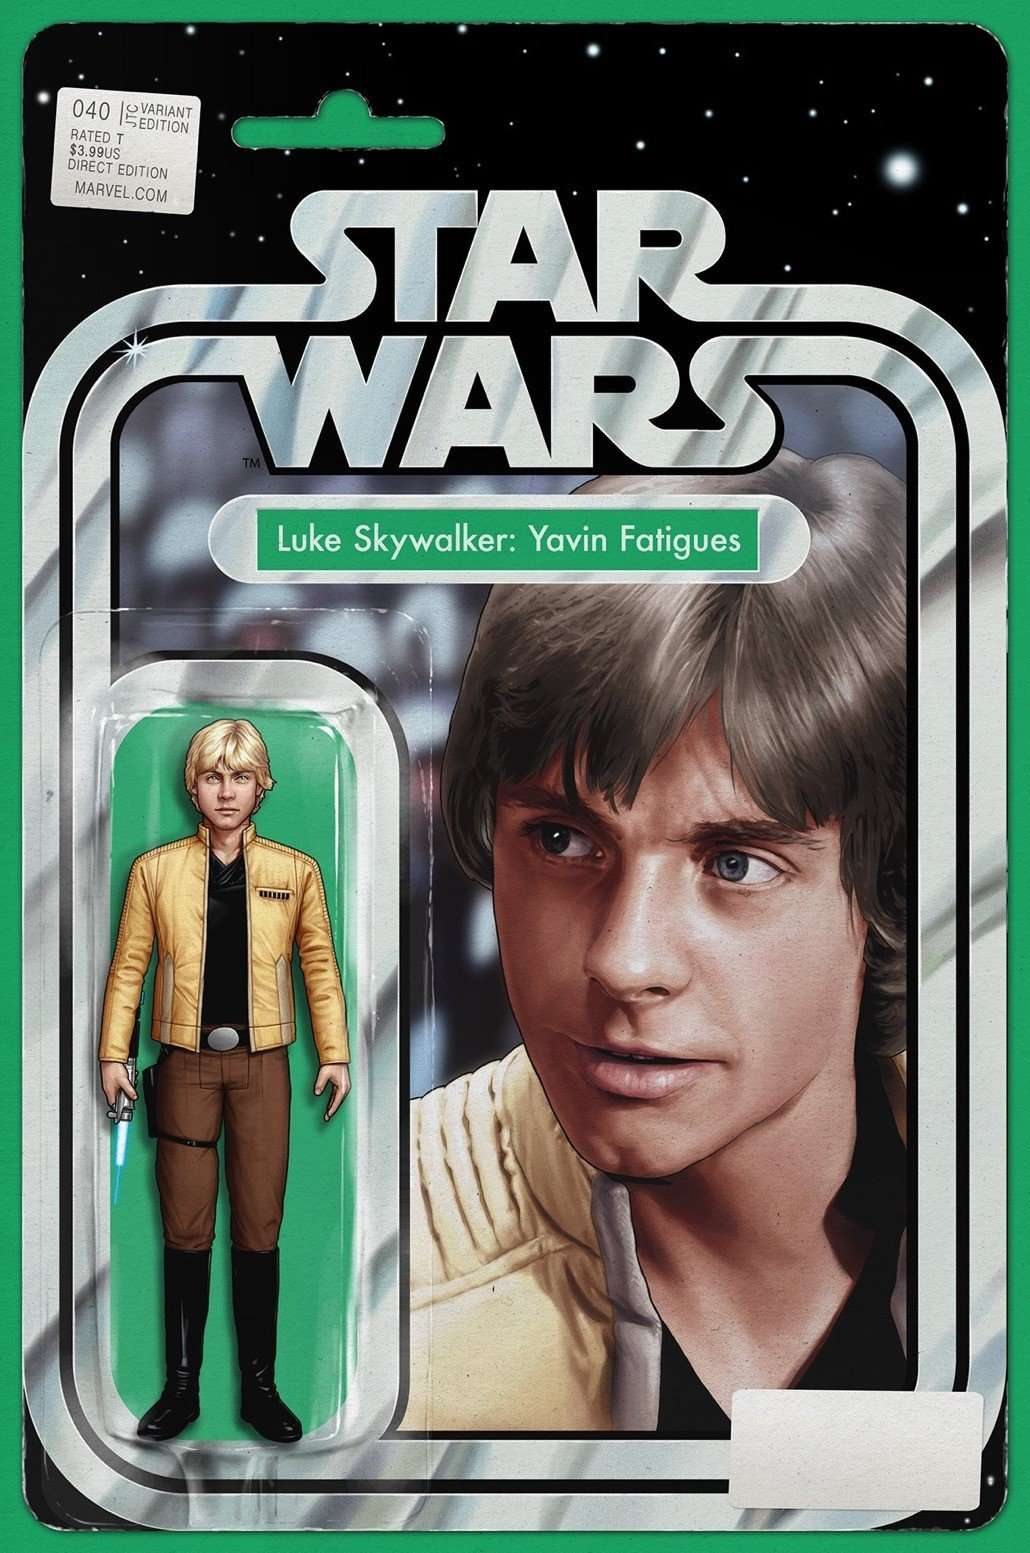 Star Wars #40 action figure variant, Luke Skywalker: Yavin Fatigues